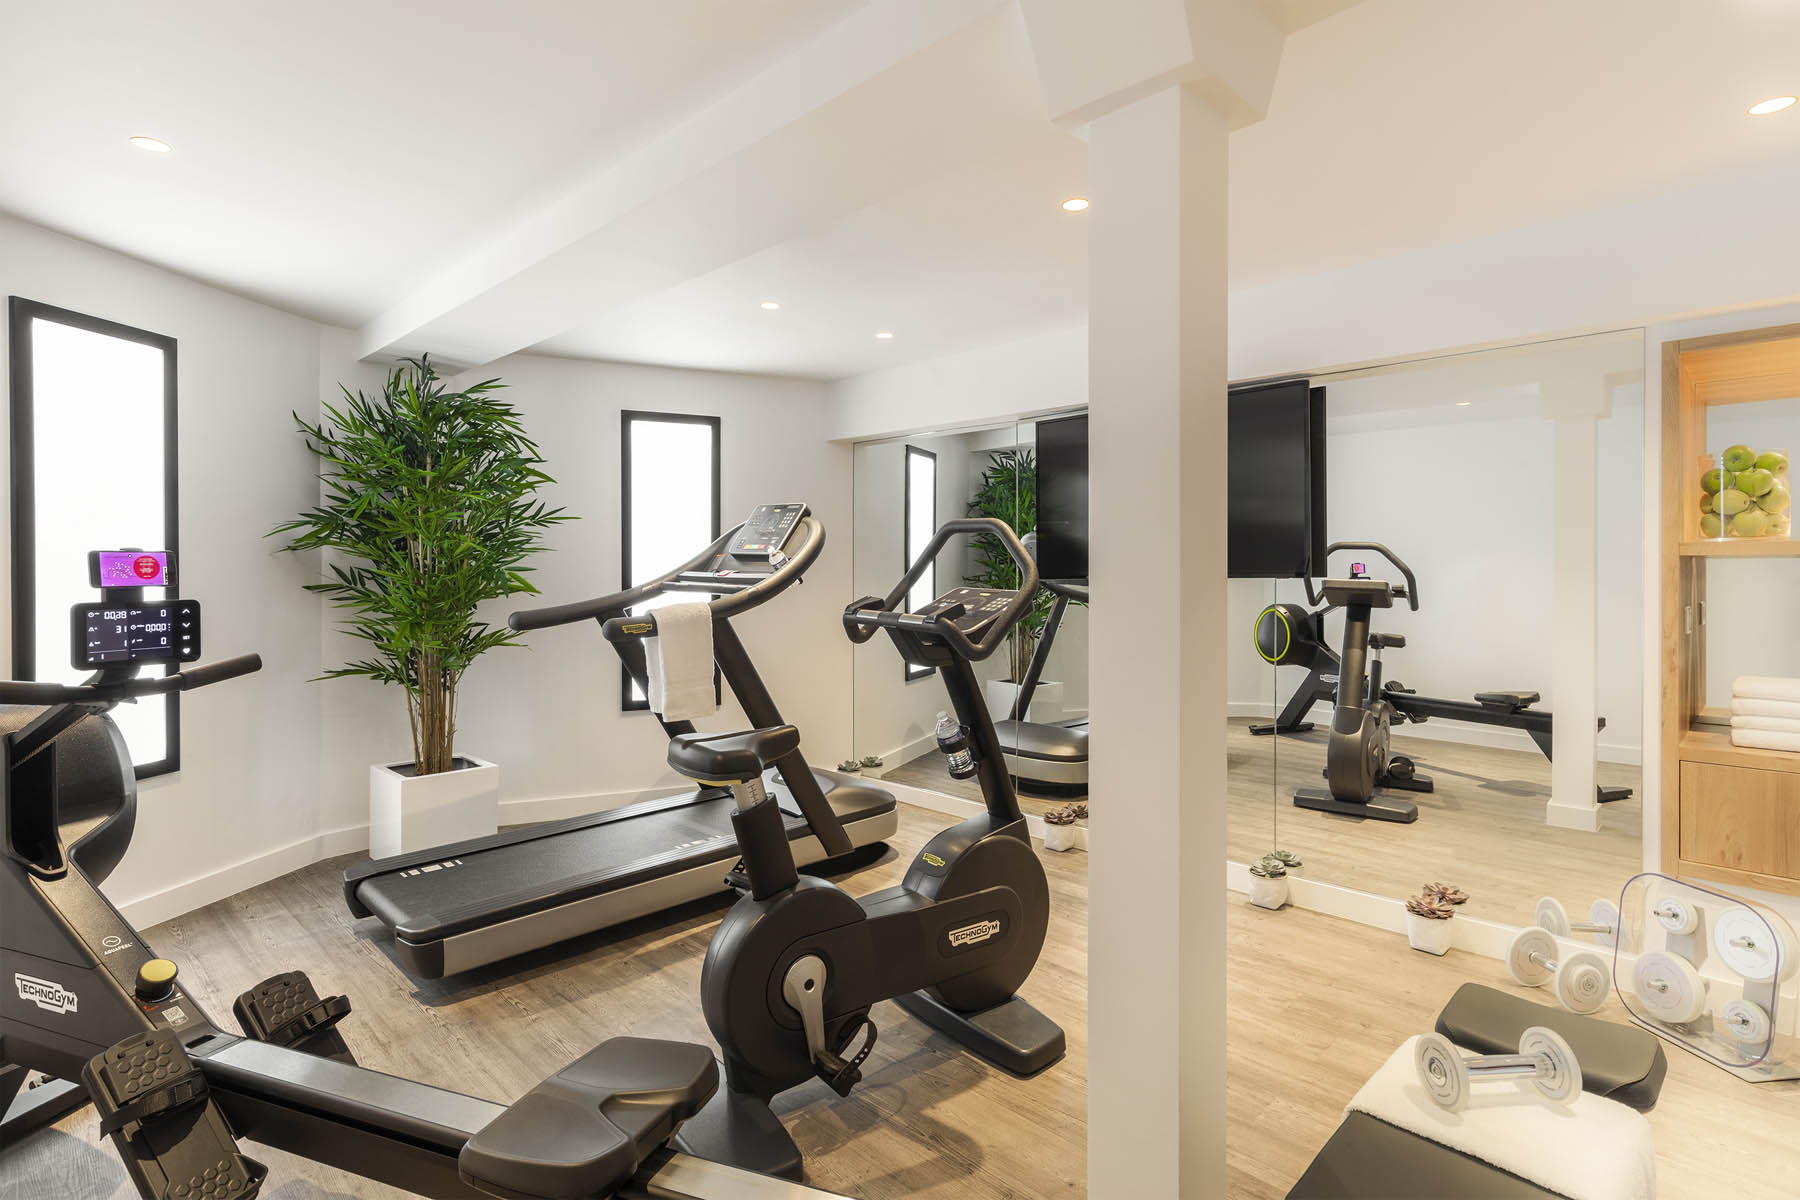 Best Western Plus la demeure fitness room